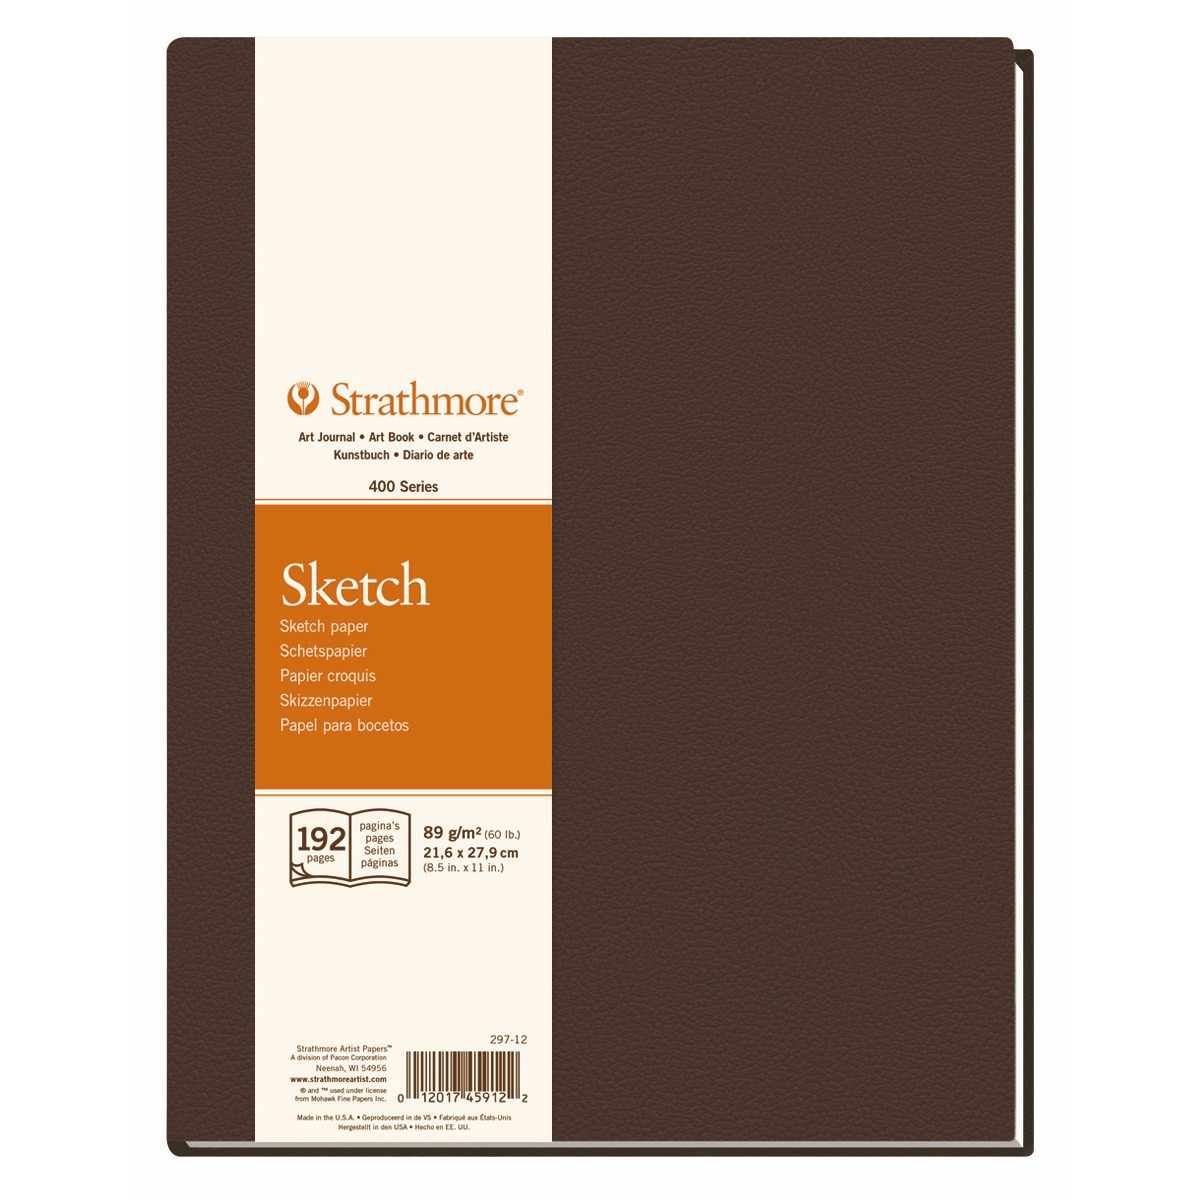 Sketch paper hardback book artist Journal Strathmore 400 series